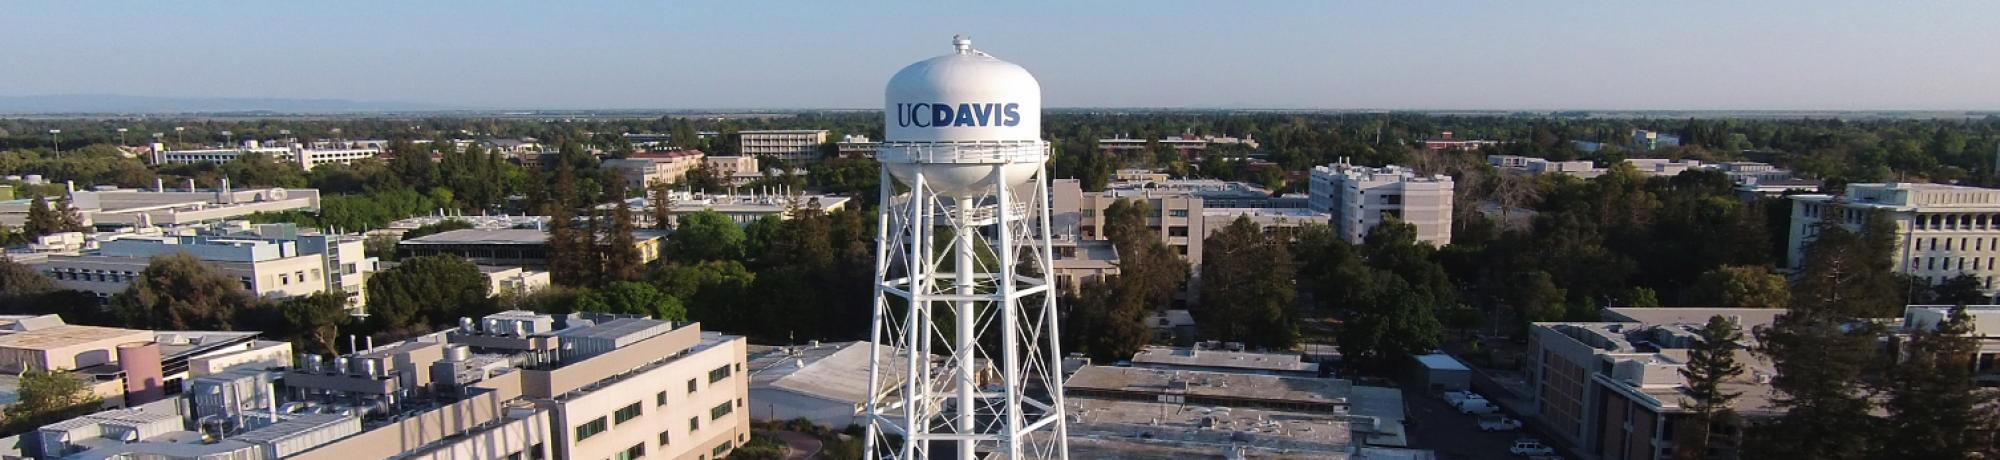 The UC Davis waterpower stands high above the campus.